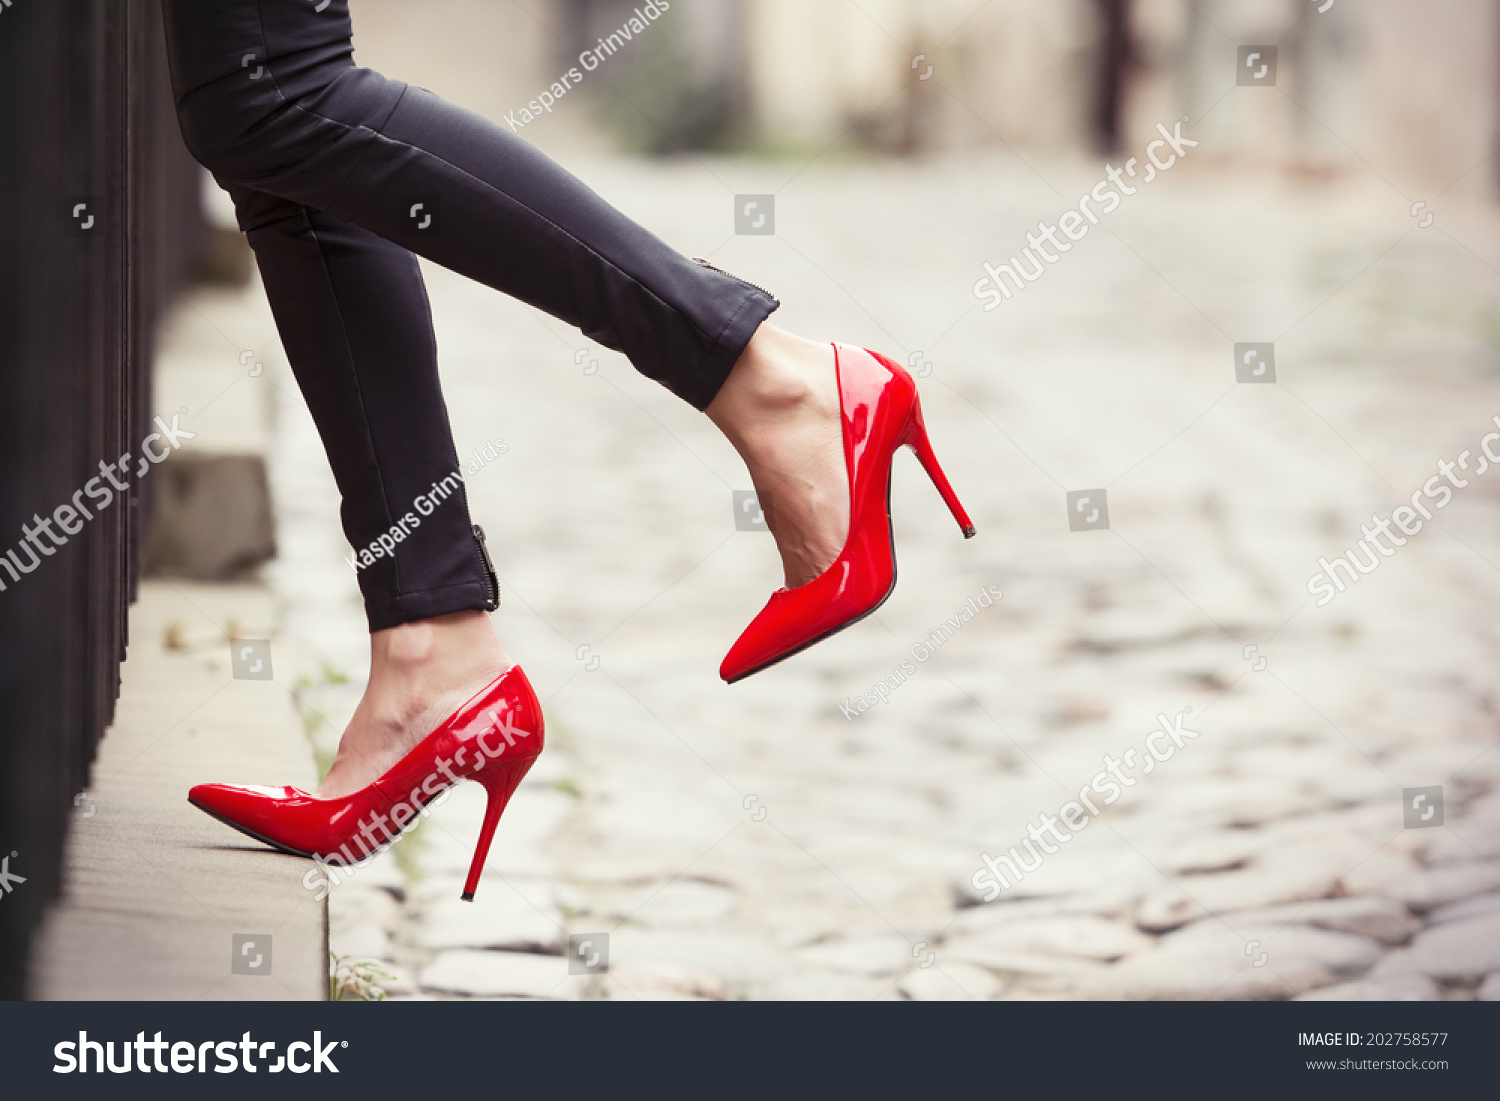 high heel shoe chair value city hydro water ski woman wearing black leather pants and red shoes